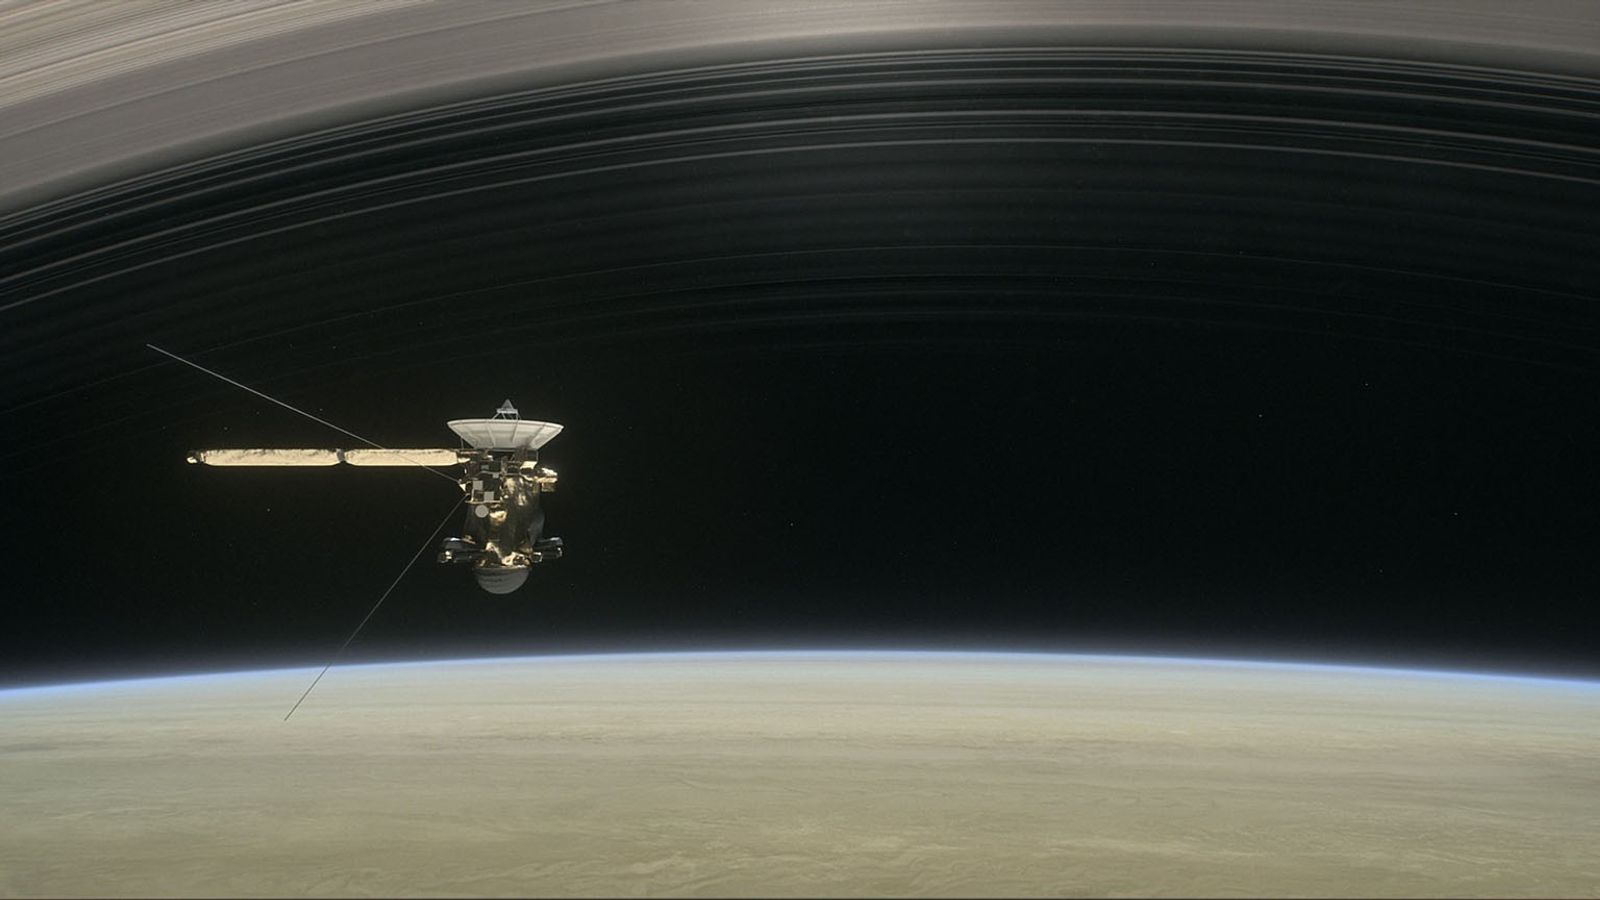 The Cassini spacecraft sails between Saturn and its rings during its final mission, in an illustration.